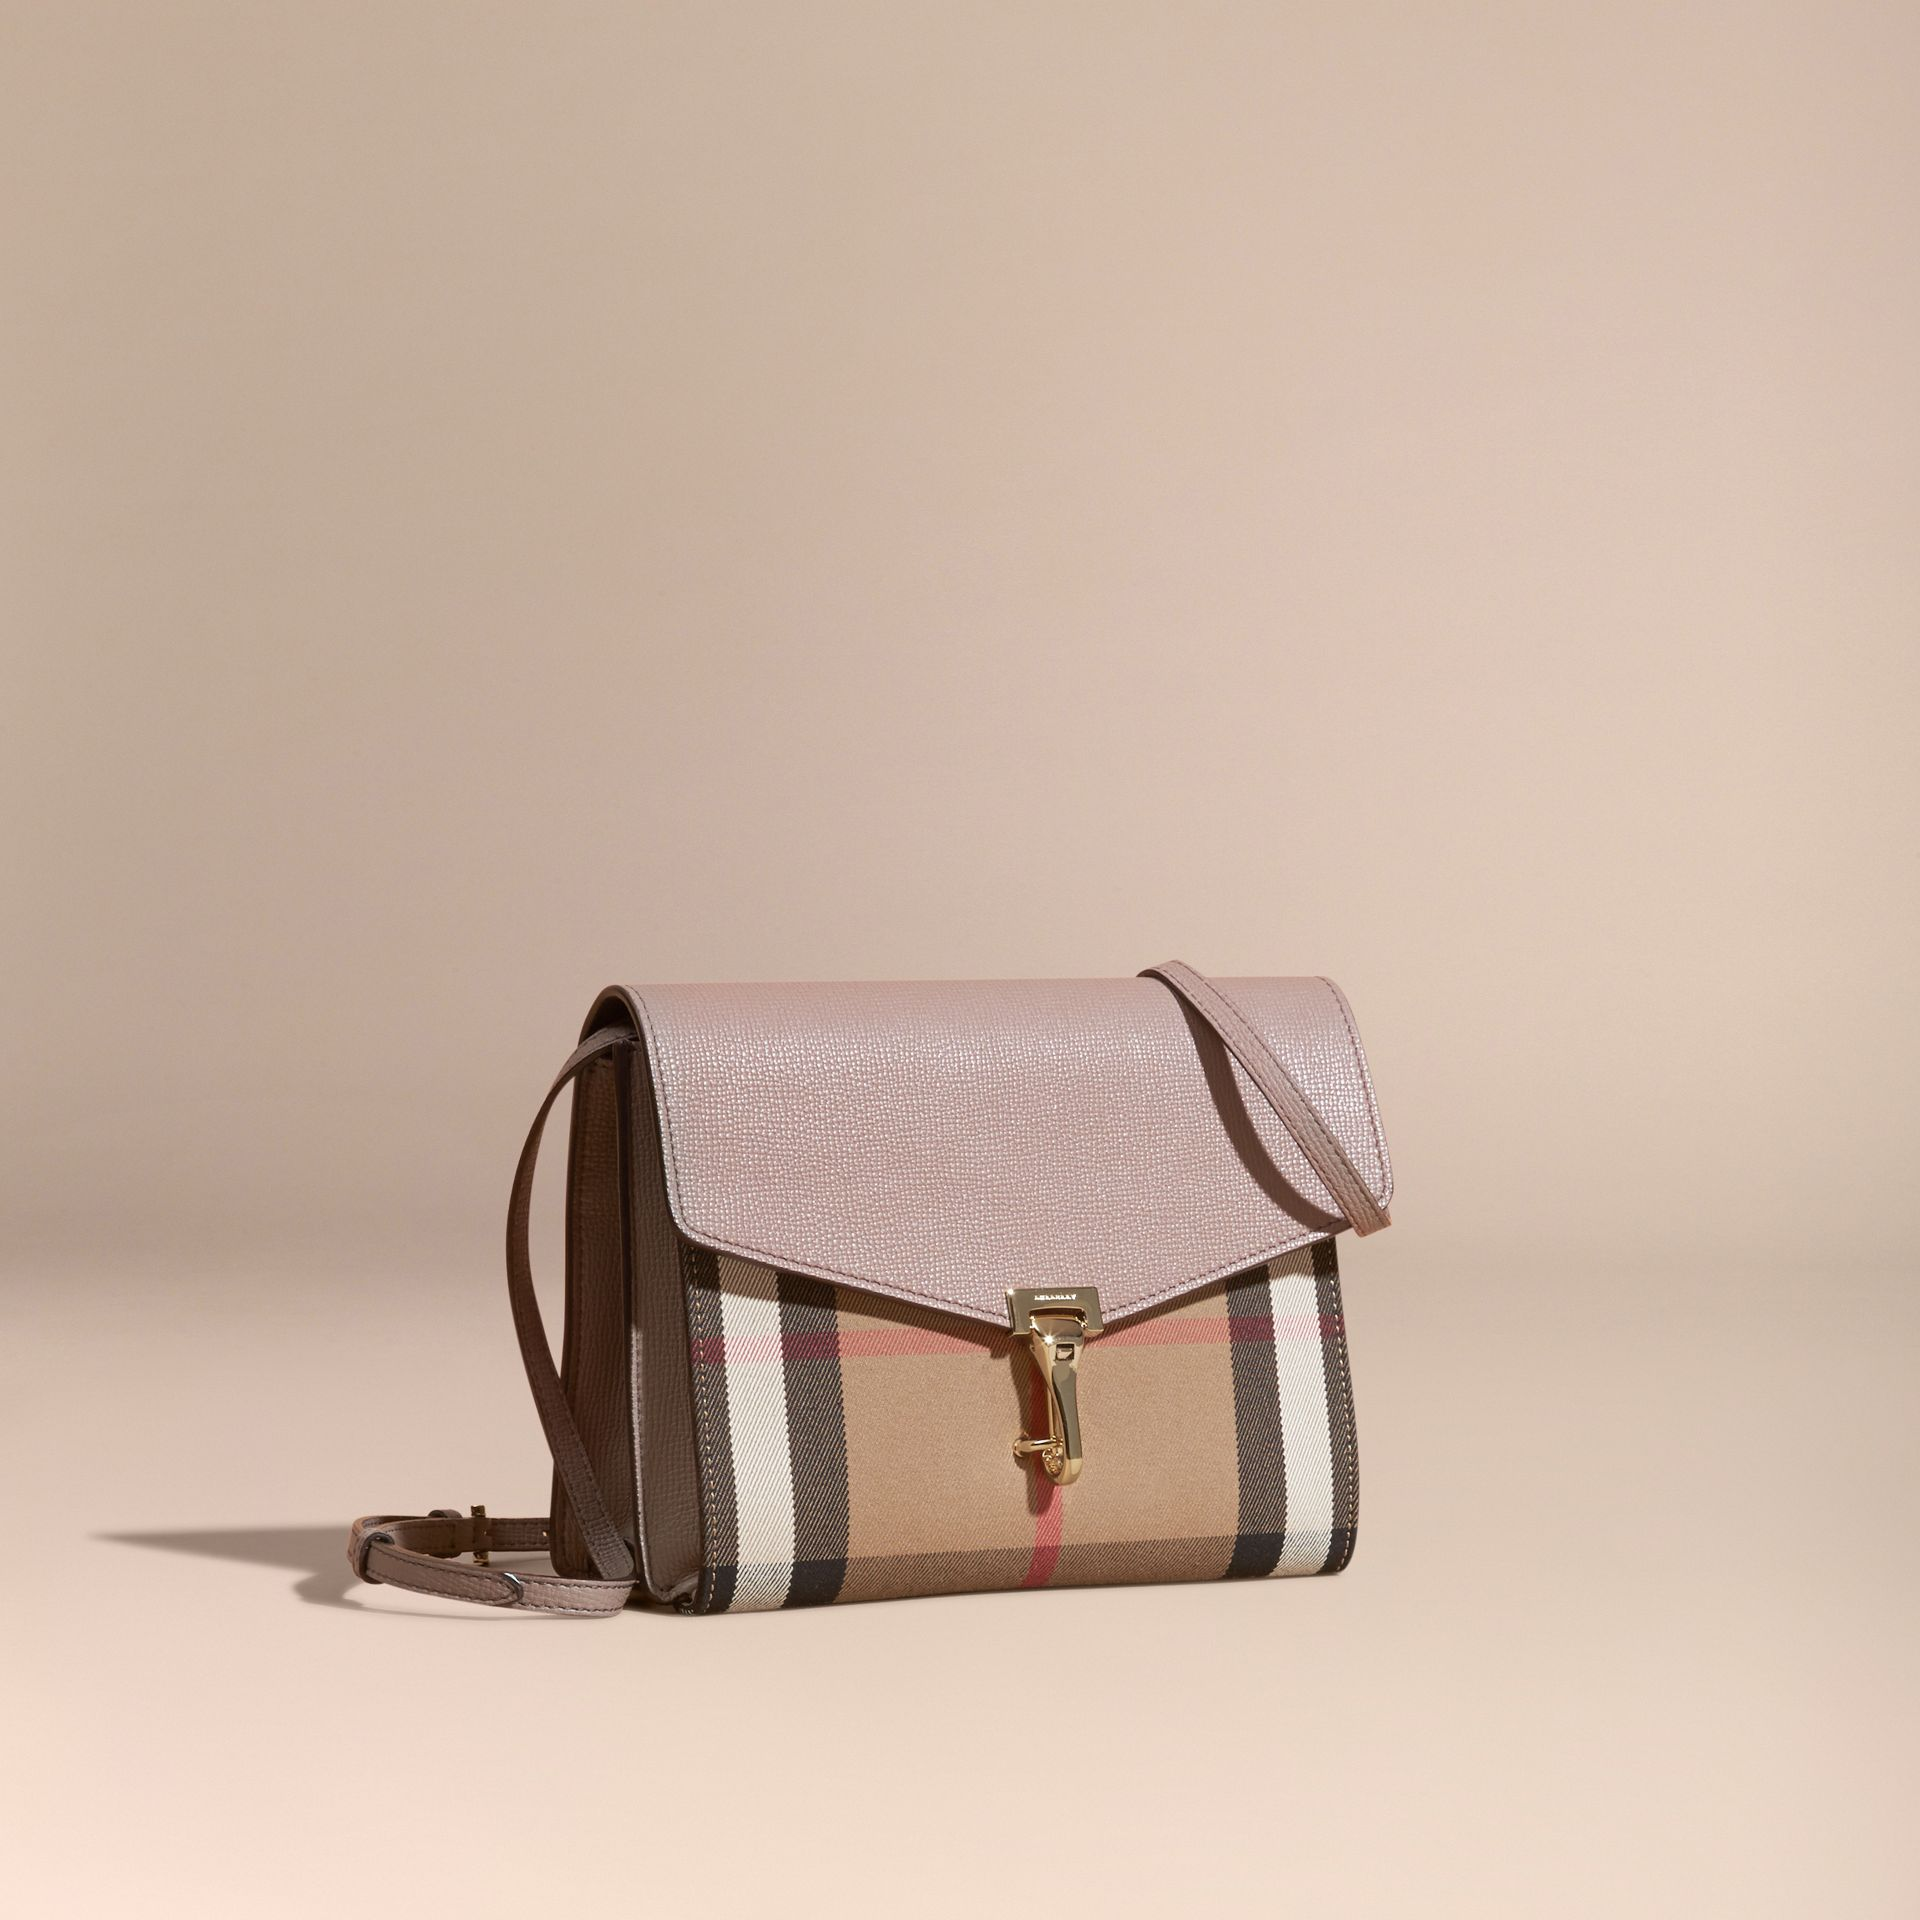 Thistle grey Small Leather and House Check Crossbody Bag Thistle Grey - gallery image 1